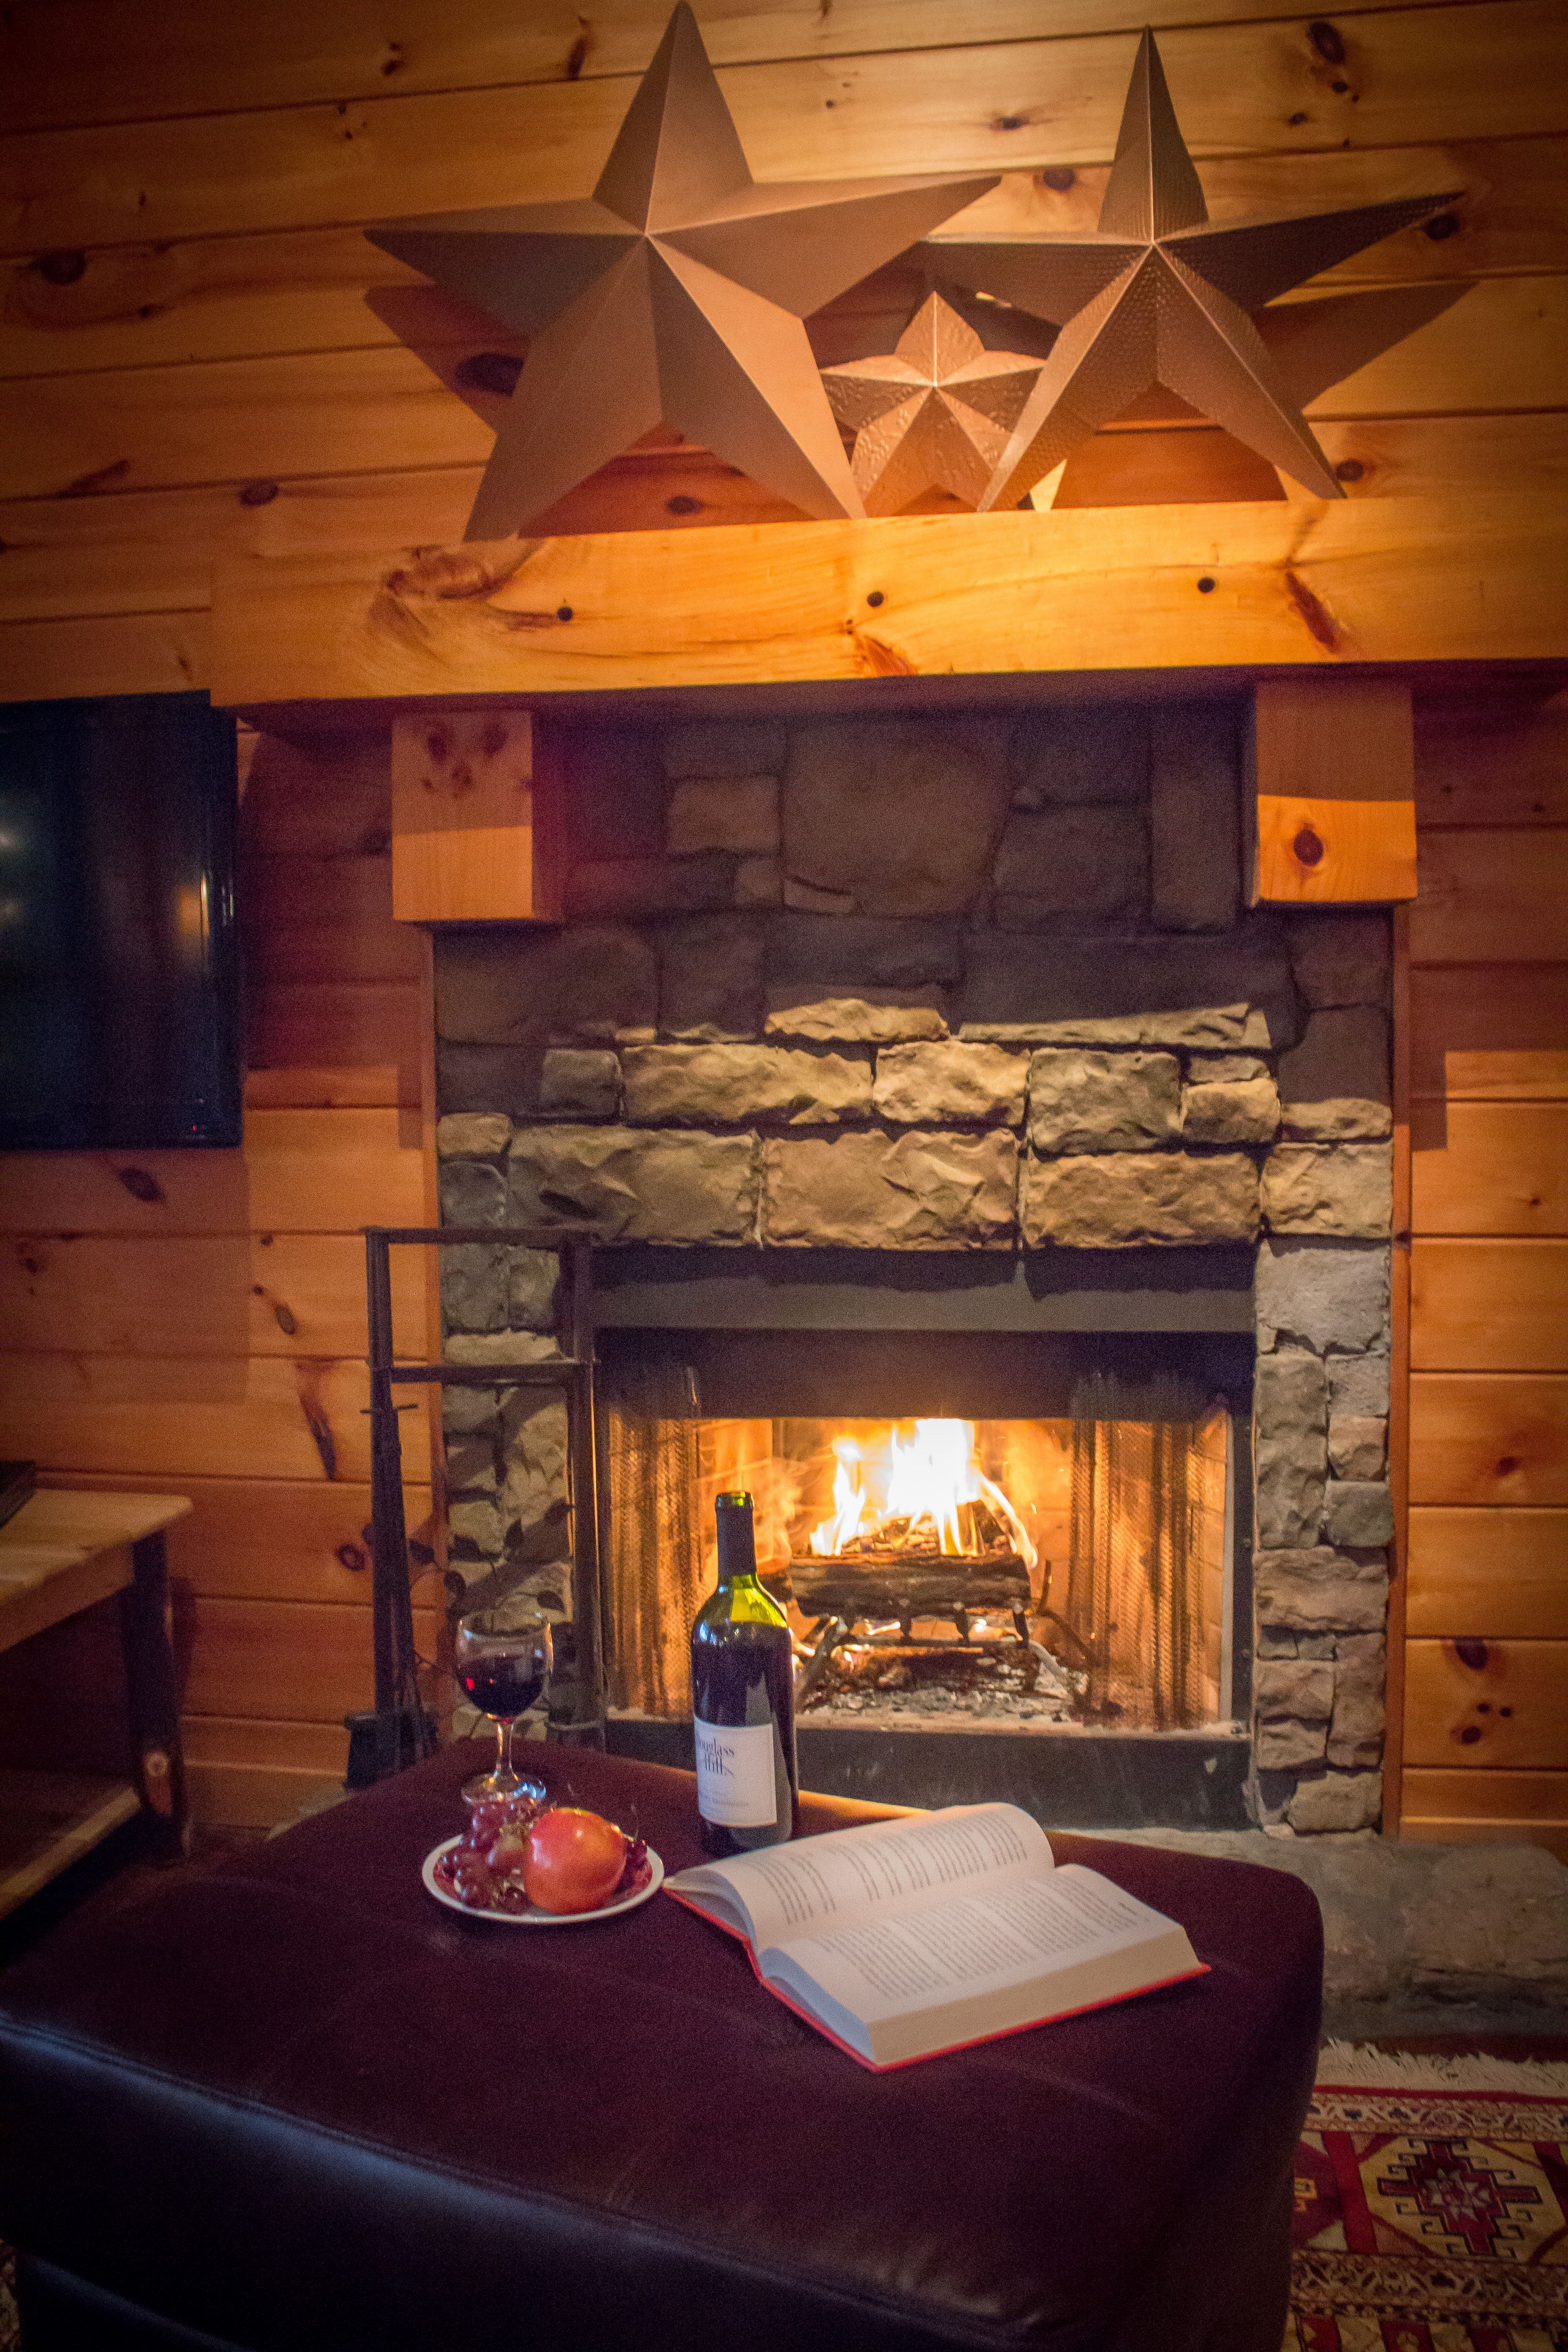 Charmant Beautiful Wood Burning Fireplace Located In The Cliffhanger Cabin!  Cliffhanger Is Managed By Wilderness View